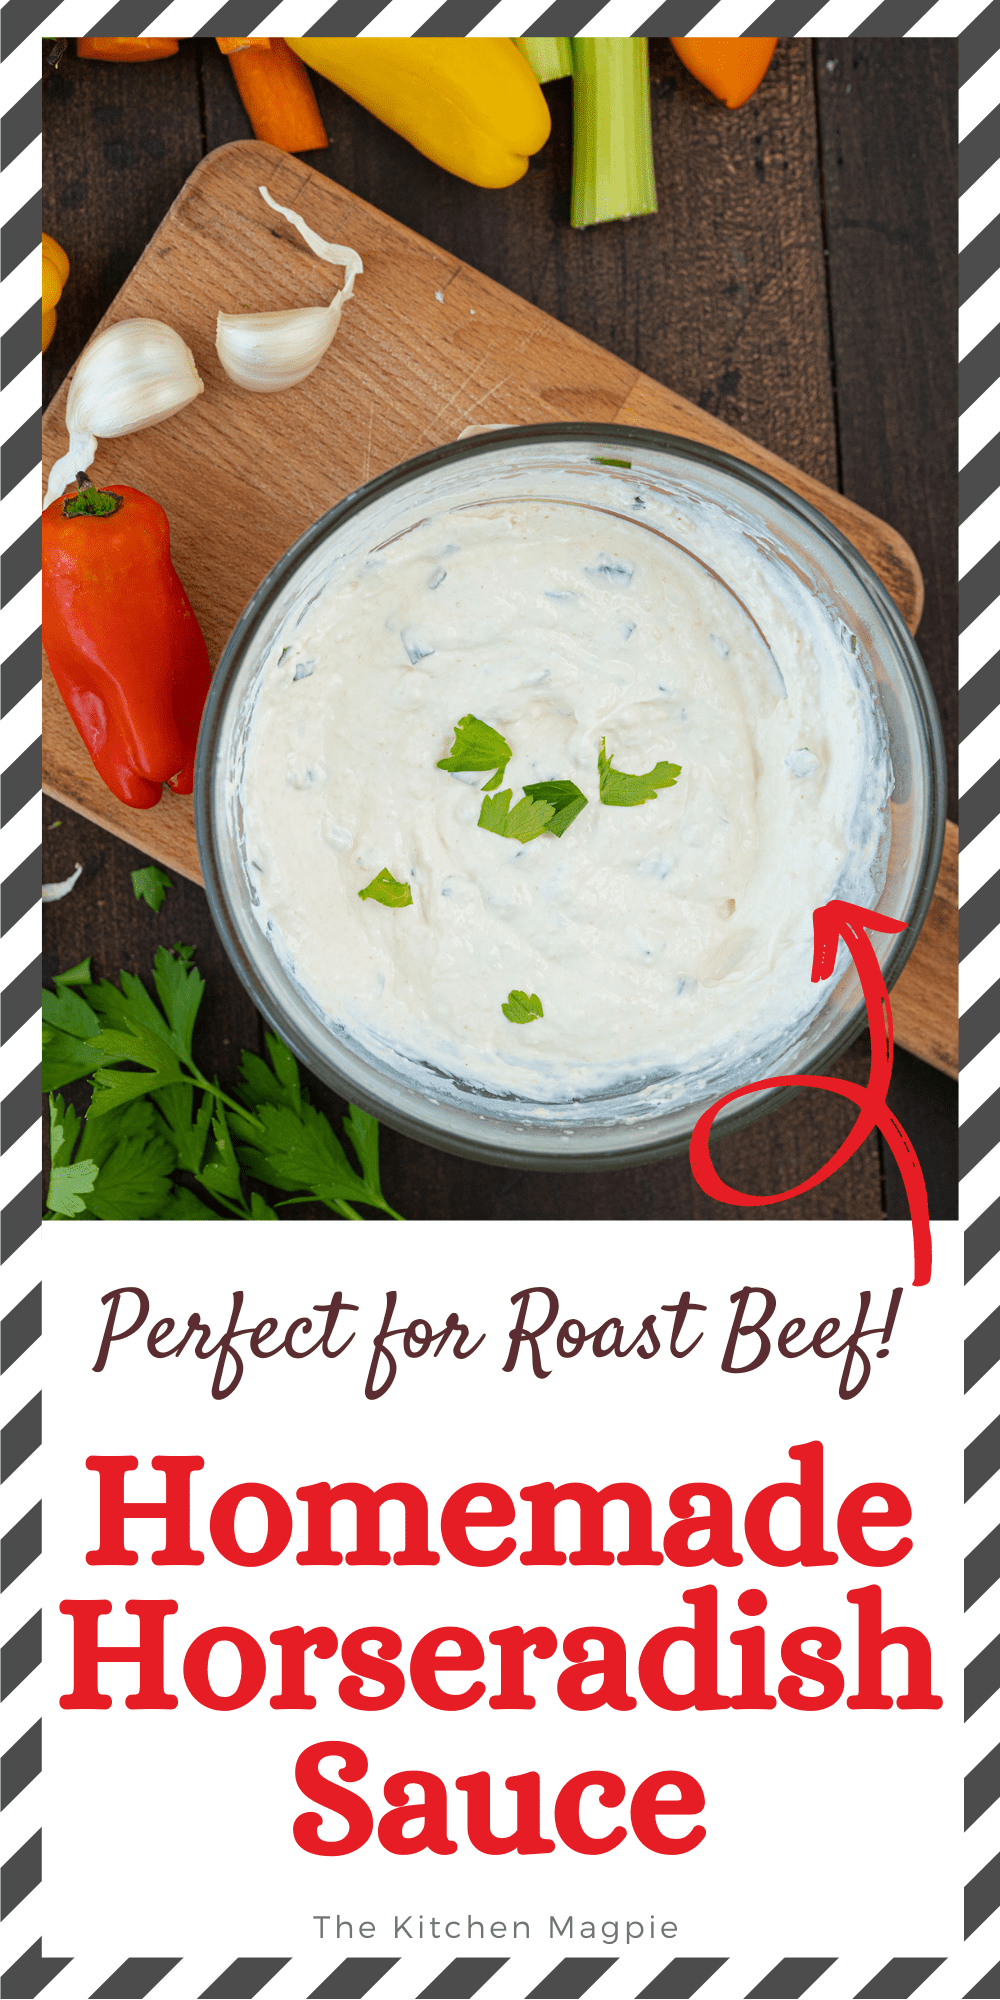 This spicy Horseradish Sauce is the perfect accompaniment for any beef recipe and the ingredients are so simply to customize to your own liking!